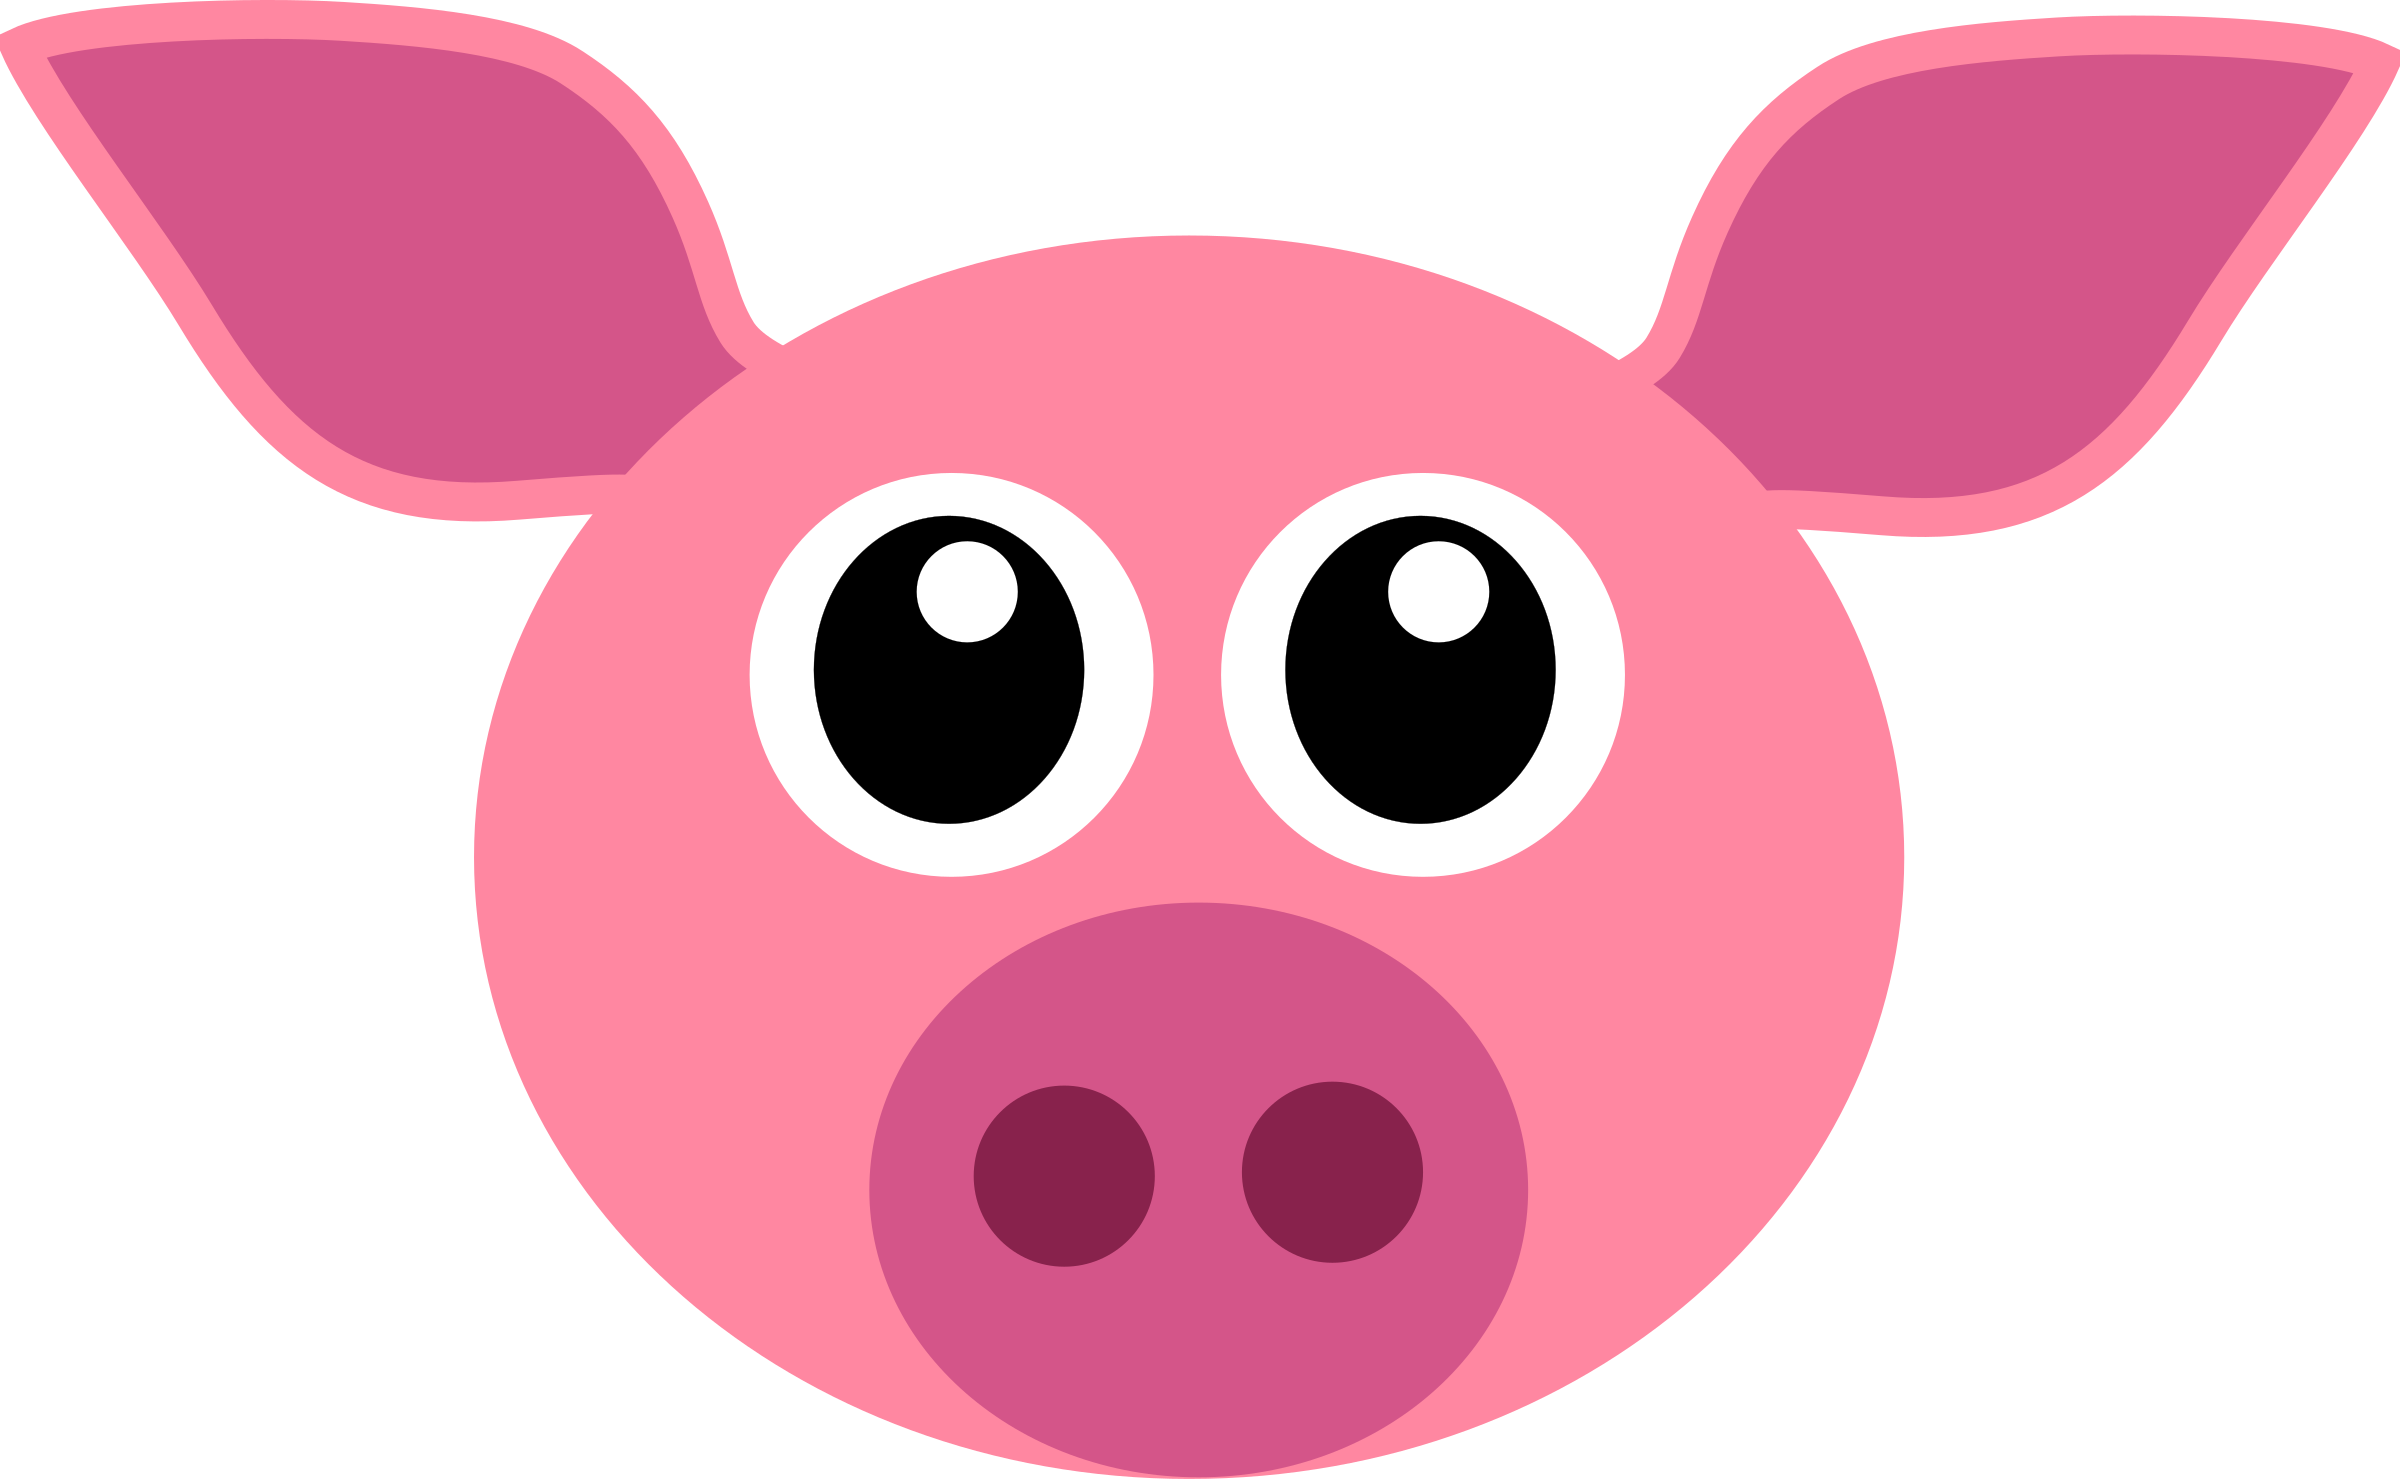 Funny Lovely Pig Face T Shirts Funny T Shirts Online Pig Images Animal Hugs Cute Animal Videos